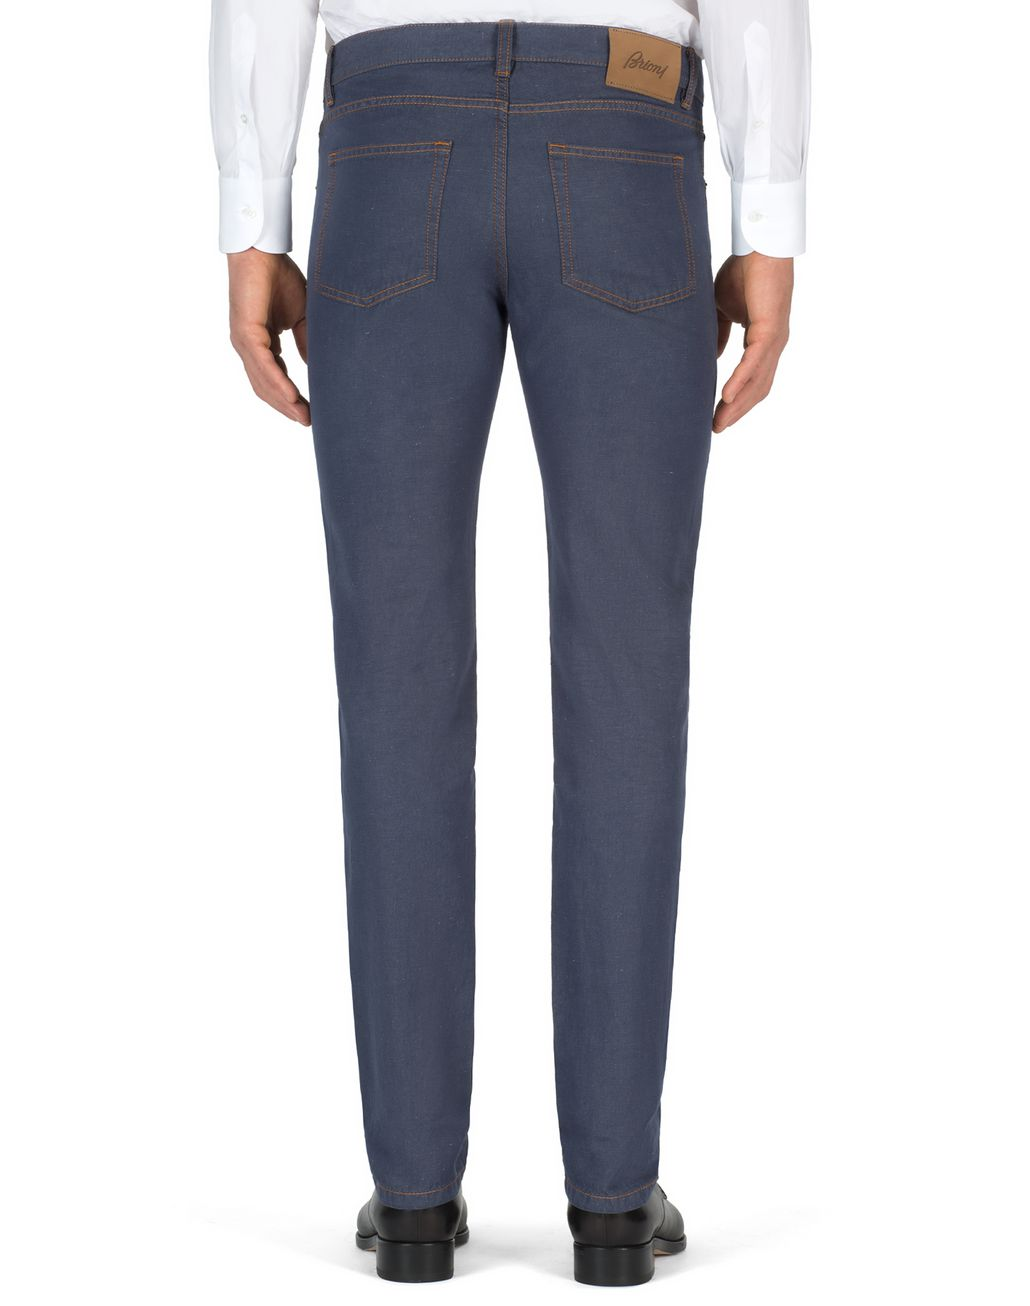 BRIONI Bluette Slim-Fit Cotton and Linen Aneto Jeans  Denim [*** pickupInStoreShippingNotGuaranteed_info ***] d